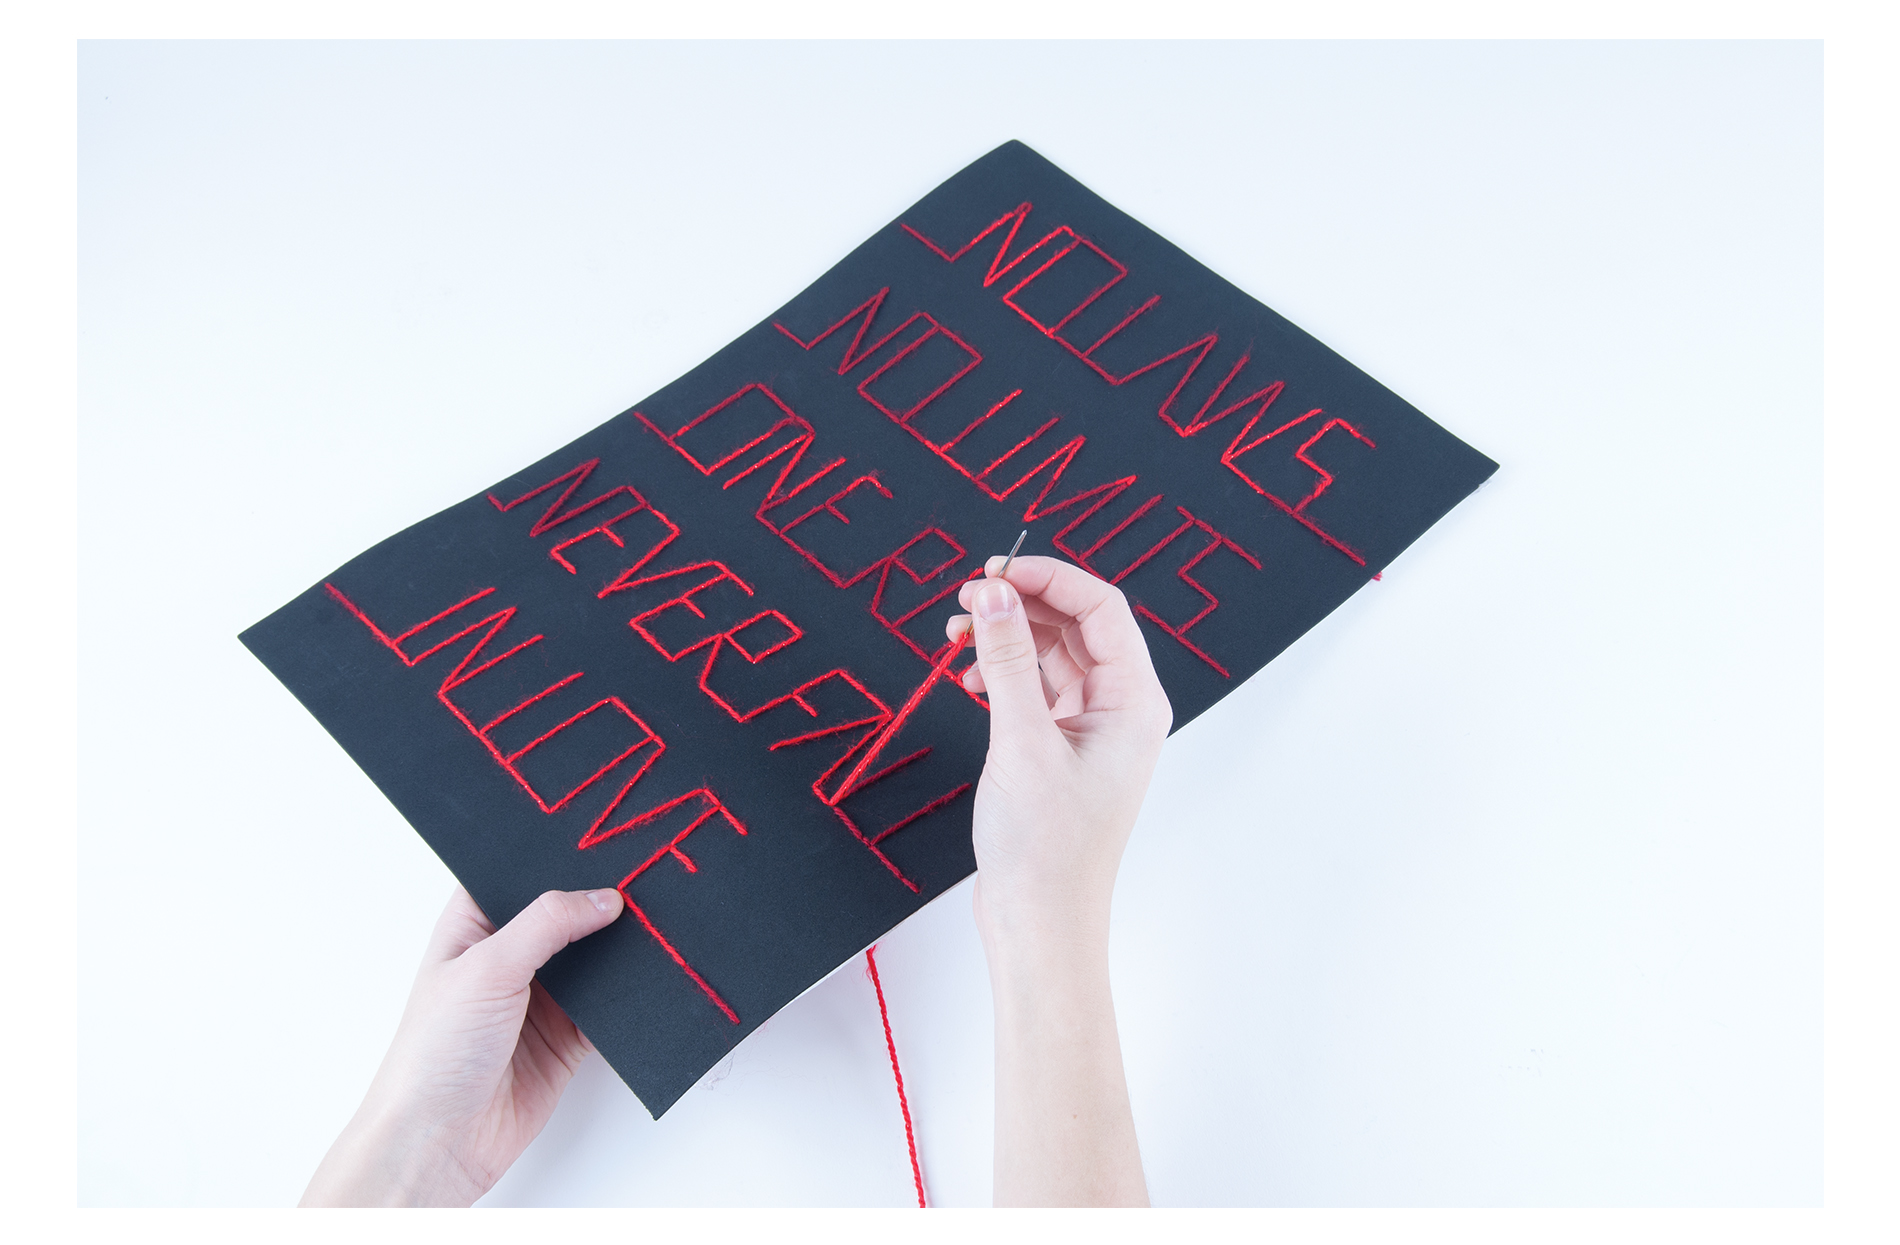 The famous tagline of the film Moulin Rouge is 'No laws, no limits, one rule: never fall in love was used as an inspiration for this handmade project. The type is all sown with the use of two different colours of wool. By using the brighter red, the shape of the mill is created inside the type.